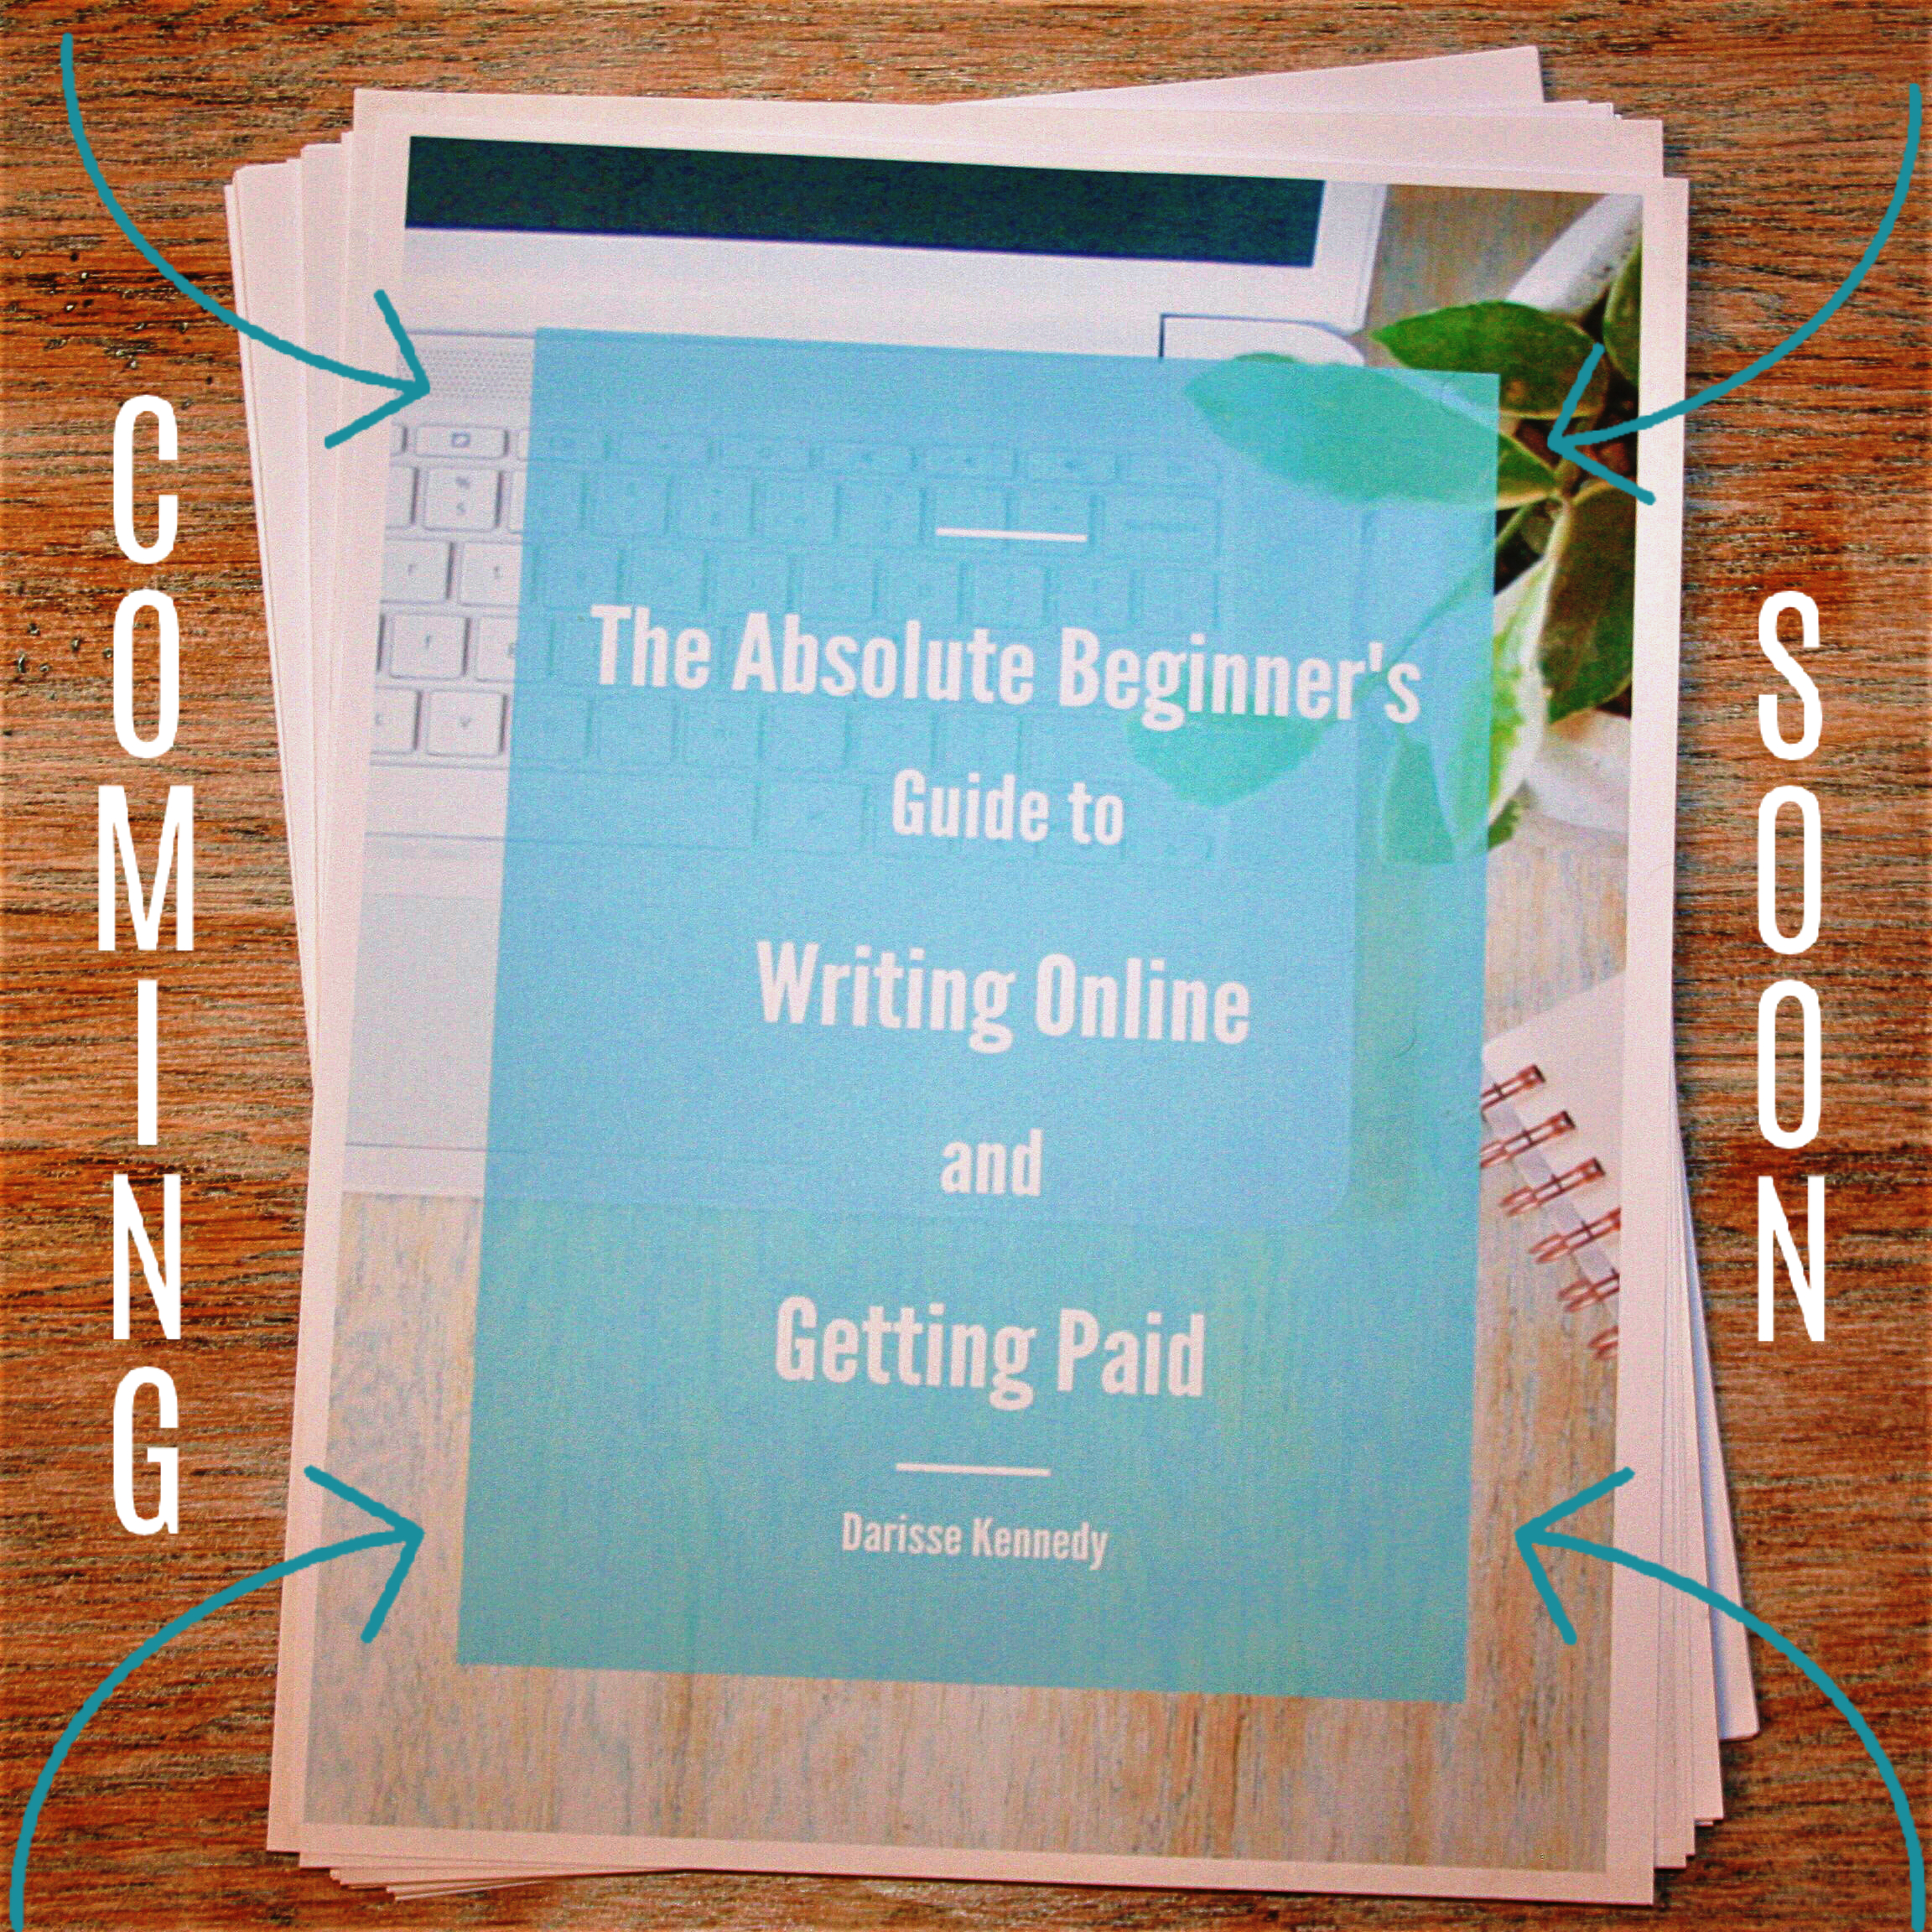 Cover page of training guide The Absolute Beginner's Guide to Writing Online and Getting Paid